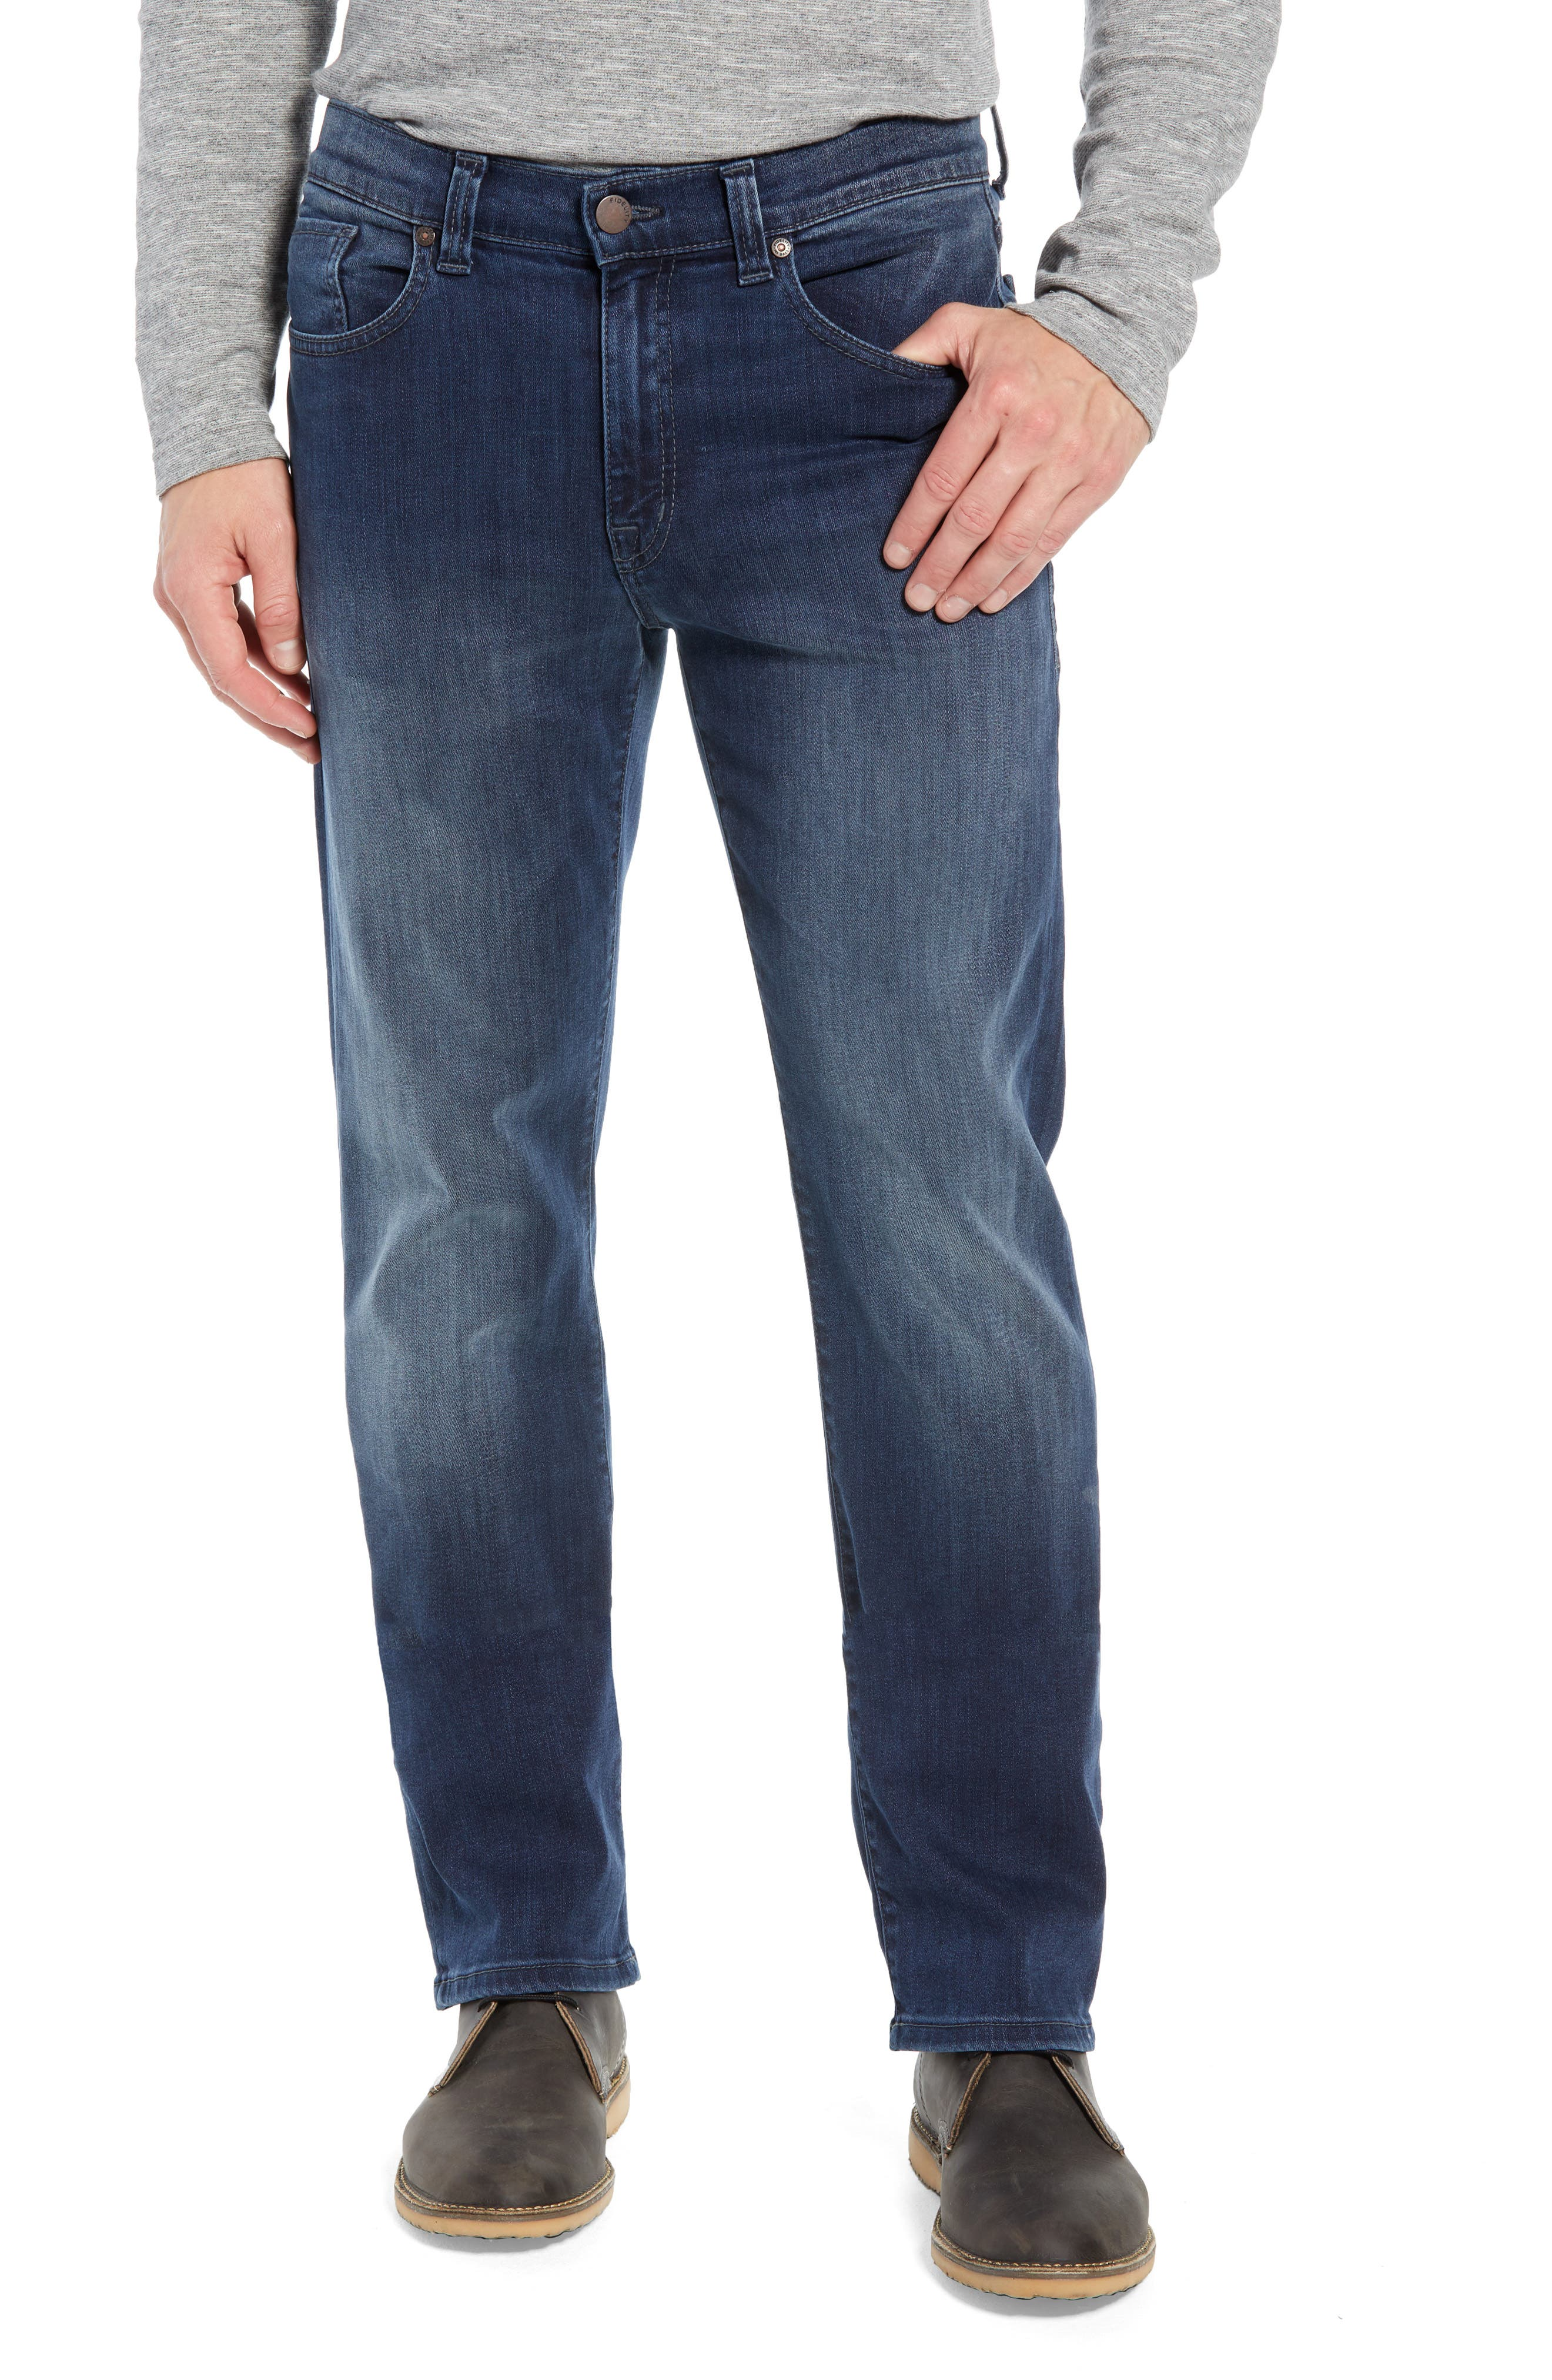 50-11 Relaxed Fit Jeans,                             Main thumbnail 1, color,                             BEL AIR BLUE